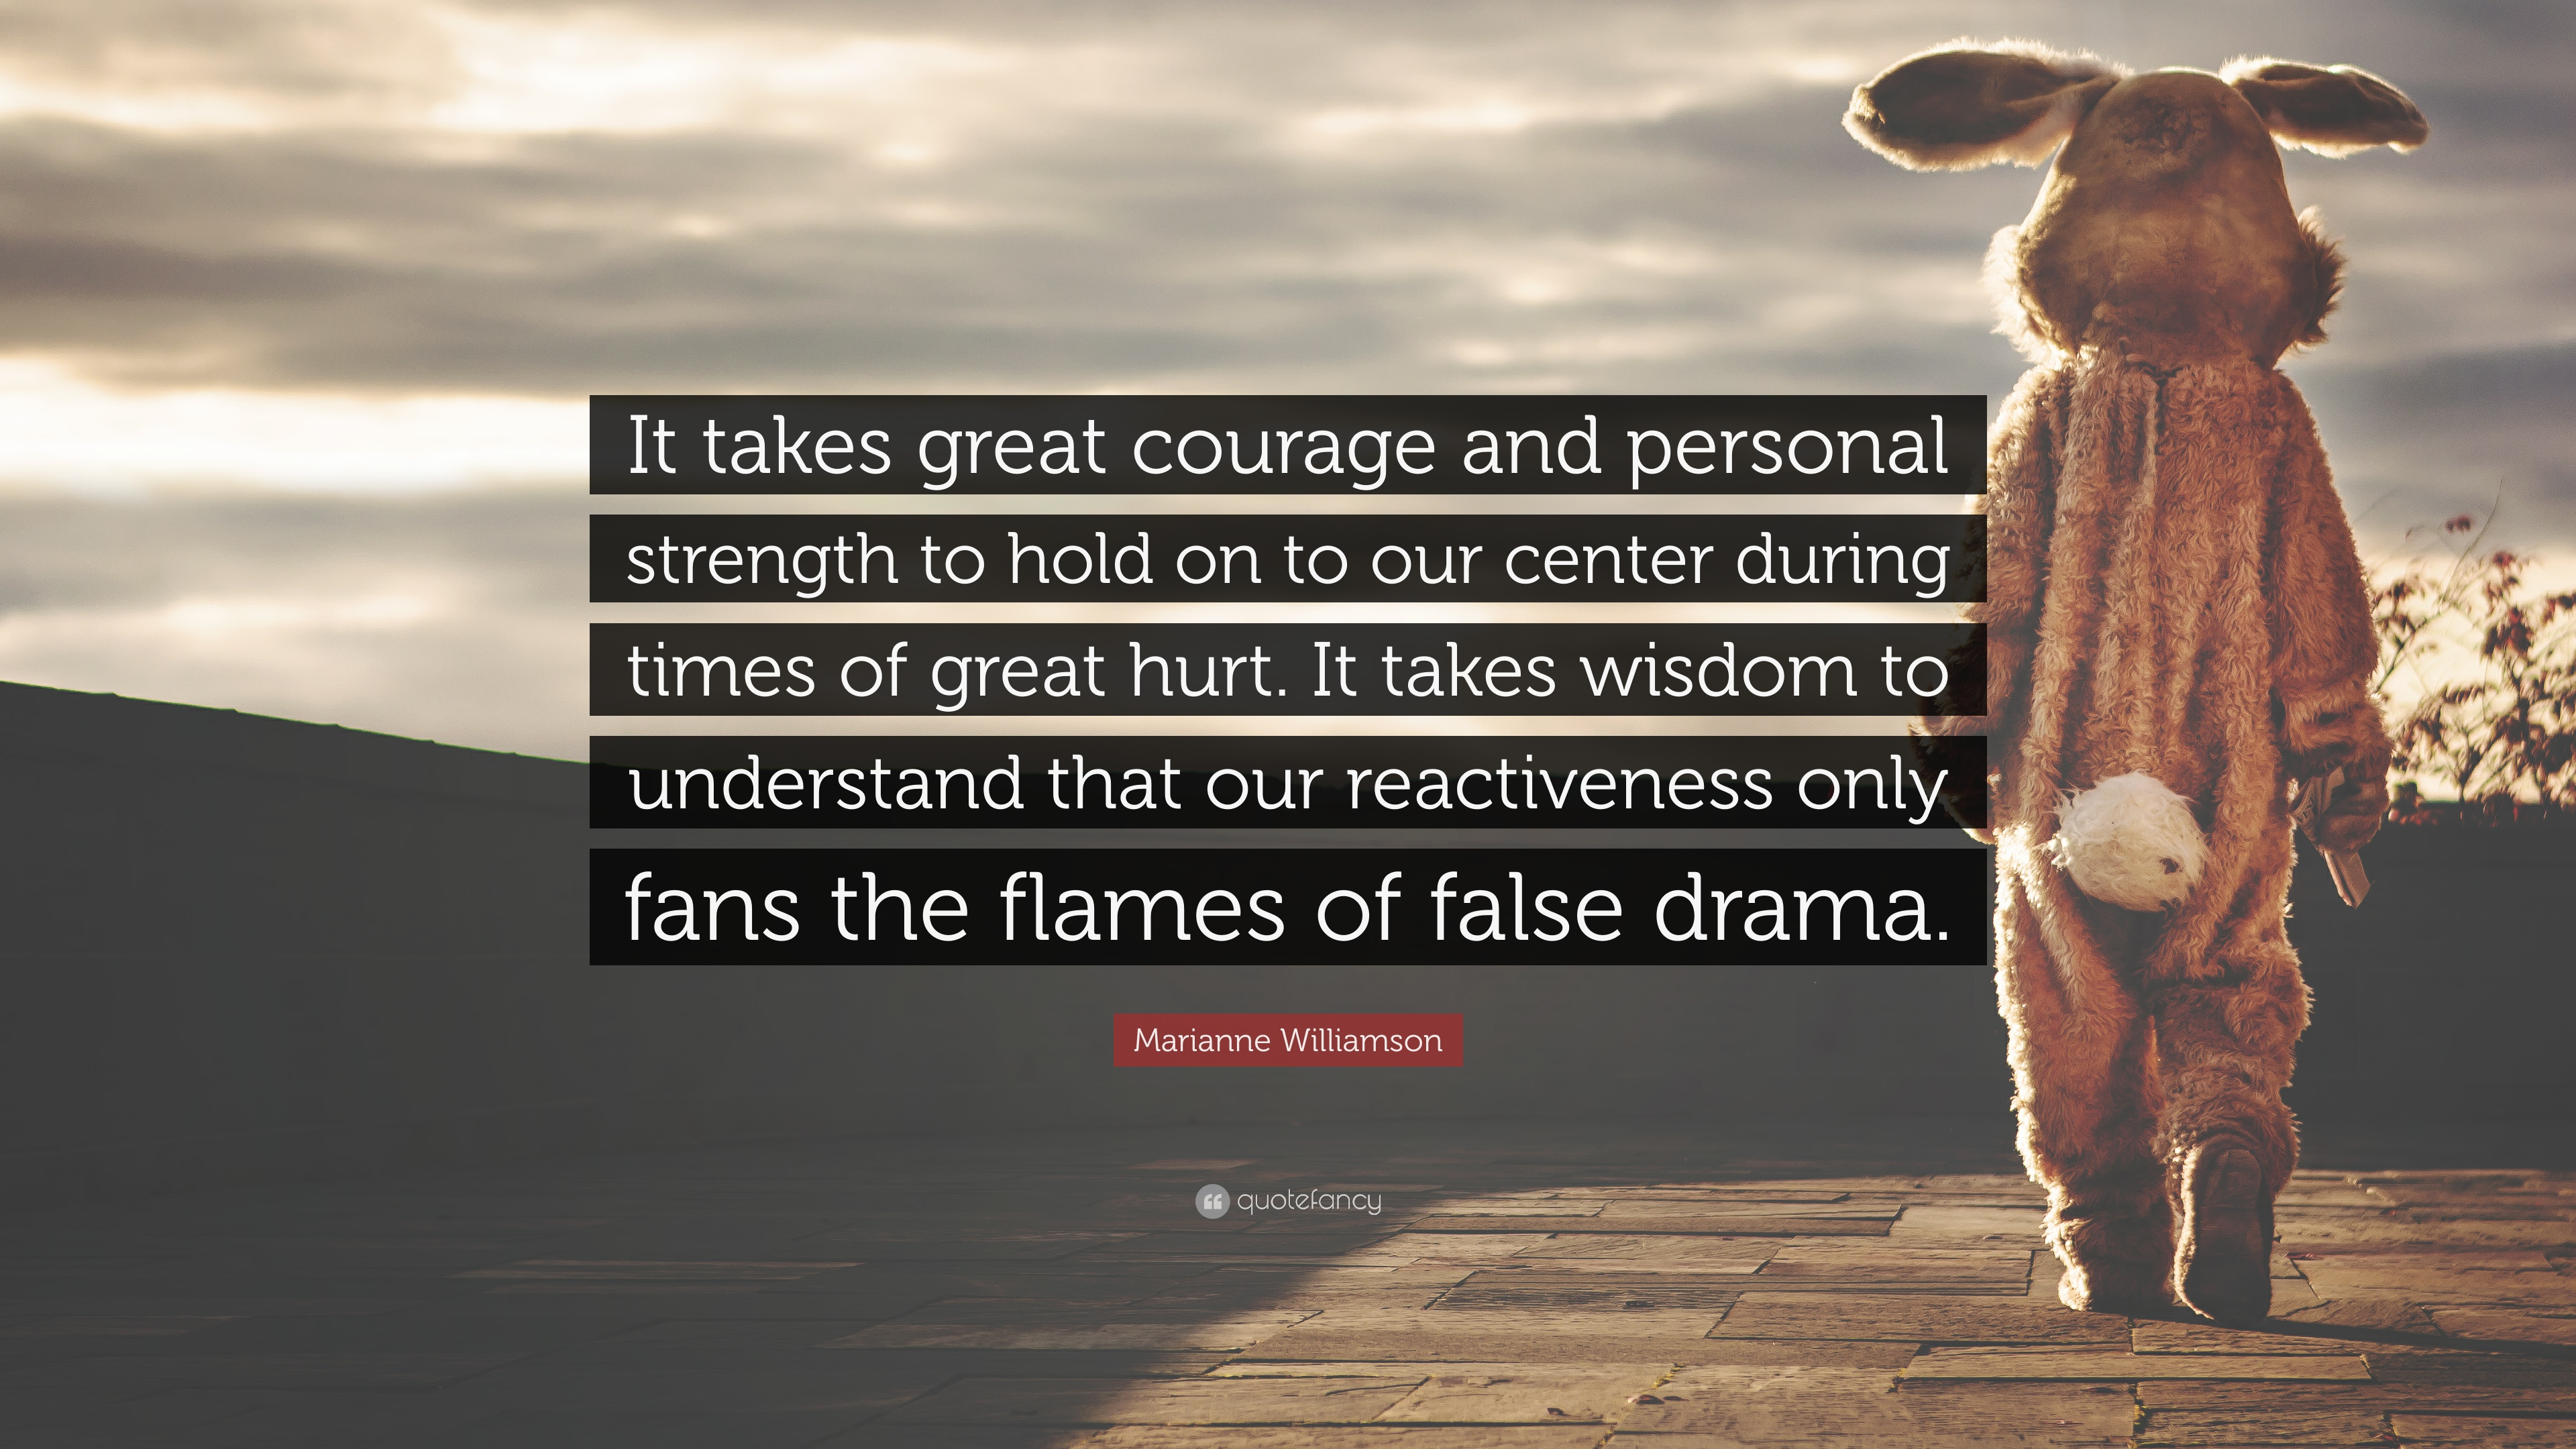 marianne williamson quote it takes great courage and personal marianne williamson quote it takes great courage and personal strength to hold on to